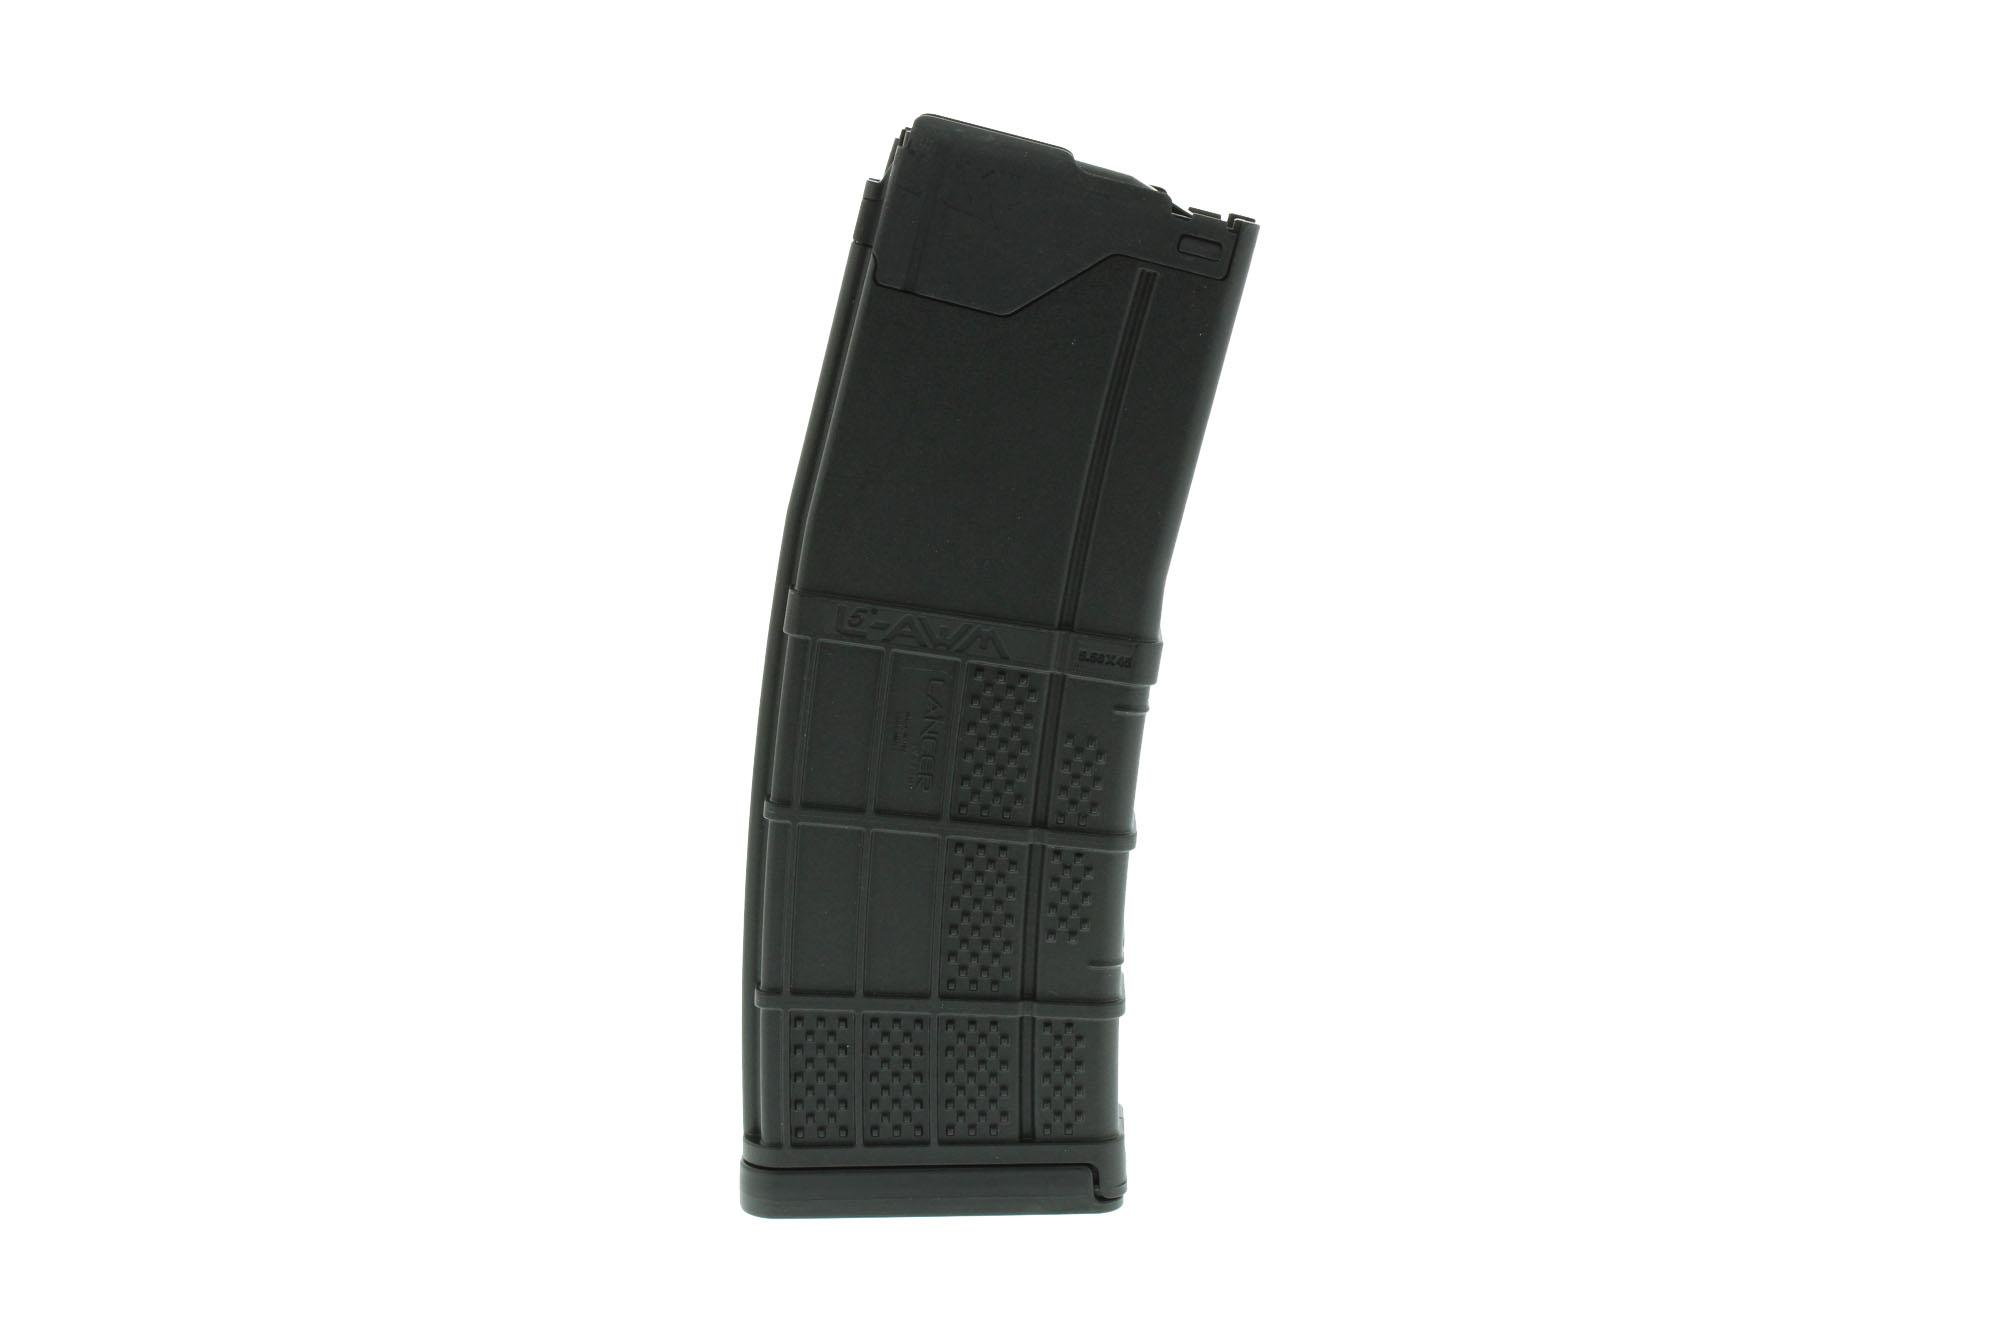 The L5AWM ar15 magazine from lancer systems has a 30 Round capacity with 5.56 nato and .223 ammunition and steel feed lips